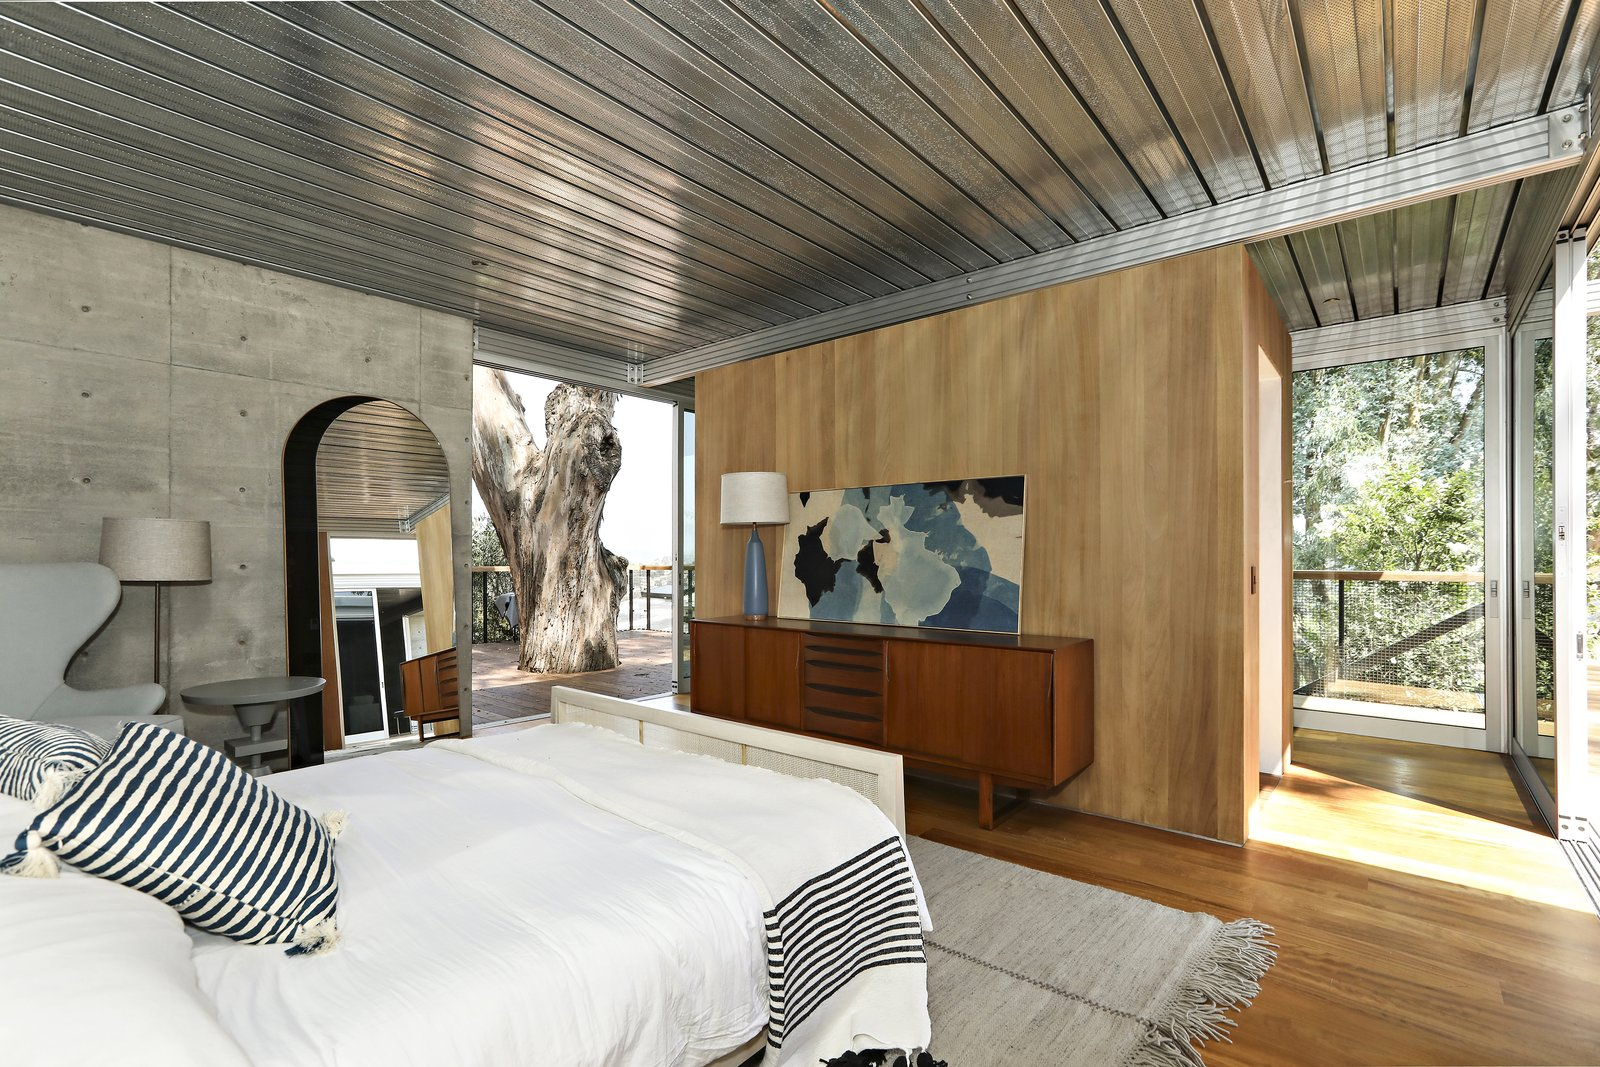 Bedroom, Dresser, Bed, Table Lighting, Chair, Medium Hardwood Floor, Night Stands, Rug Floor, Floor Lighting, and Lamps A look at one of the three bedrooms, which is bright, airy, and has a tasteful mix of luxe materials.     Photos from A Thoughtfully Updated Hillside Home in L.A. Lists For $5.12M